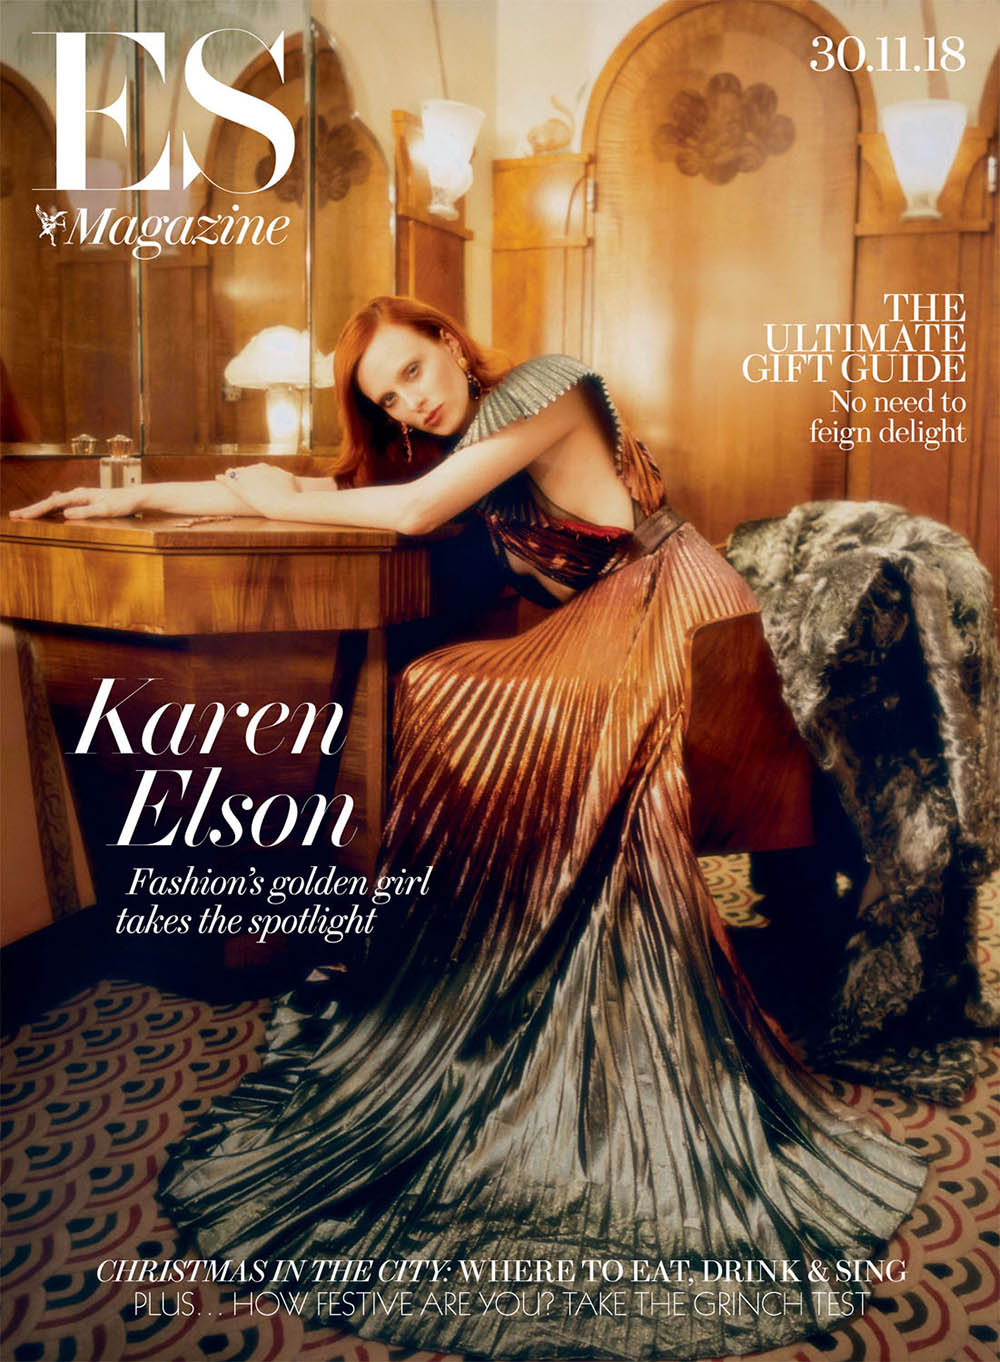 Karen Elson covers ES Magazine November 30th, 2018 by Tom Craig